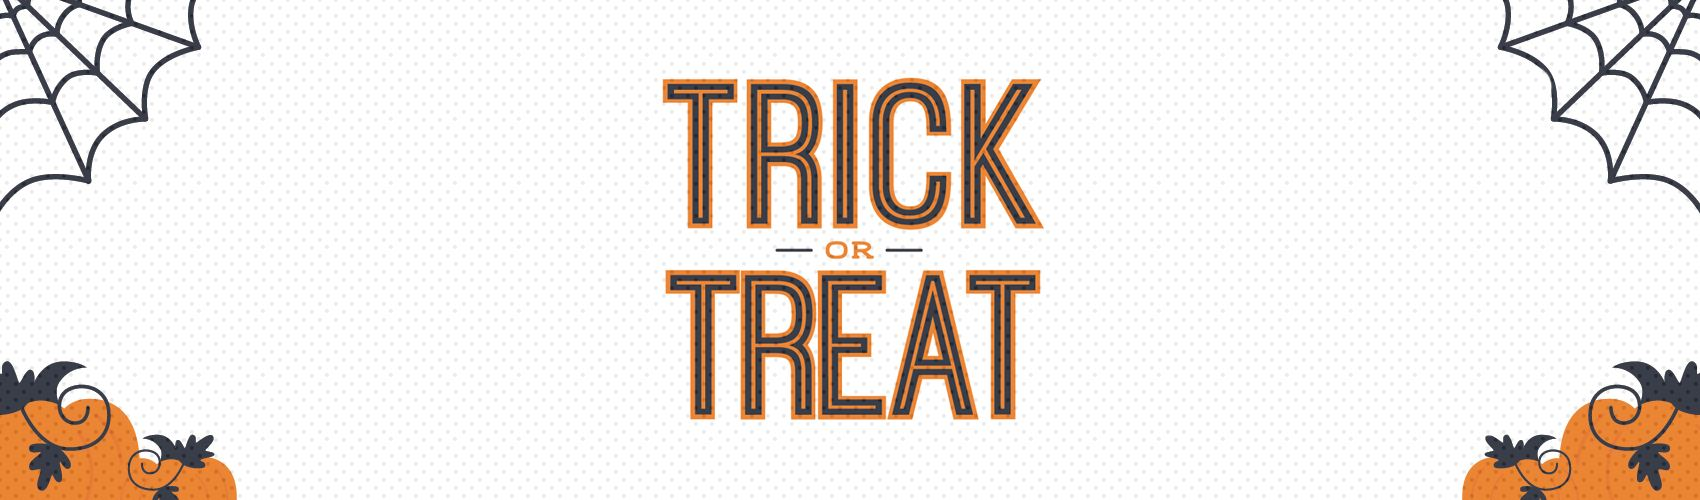 trick-or-treat-banner